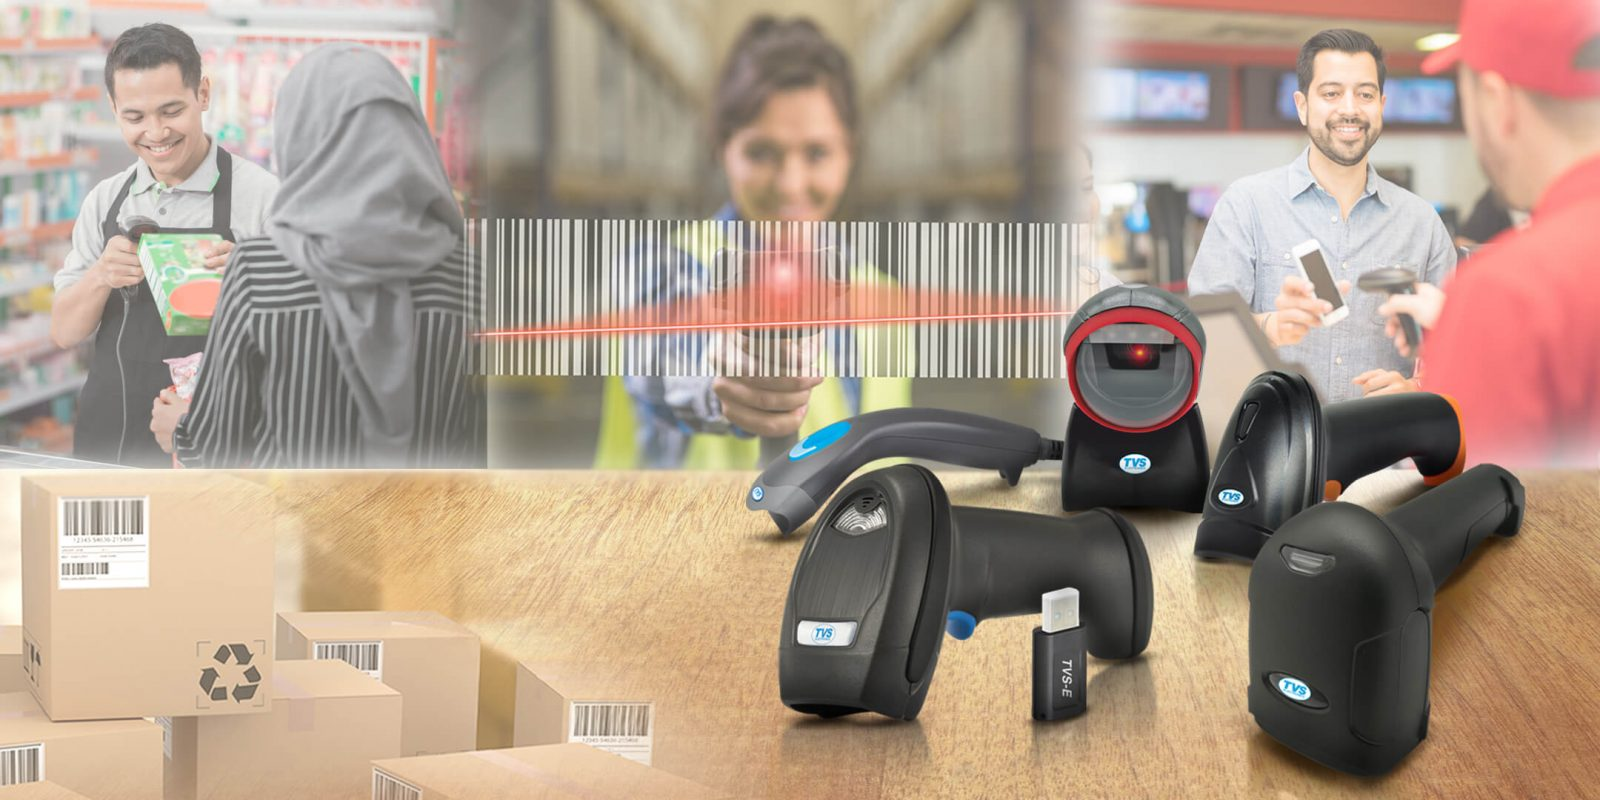 Tips on How to Choose the Right Barcode Scanner for your Business